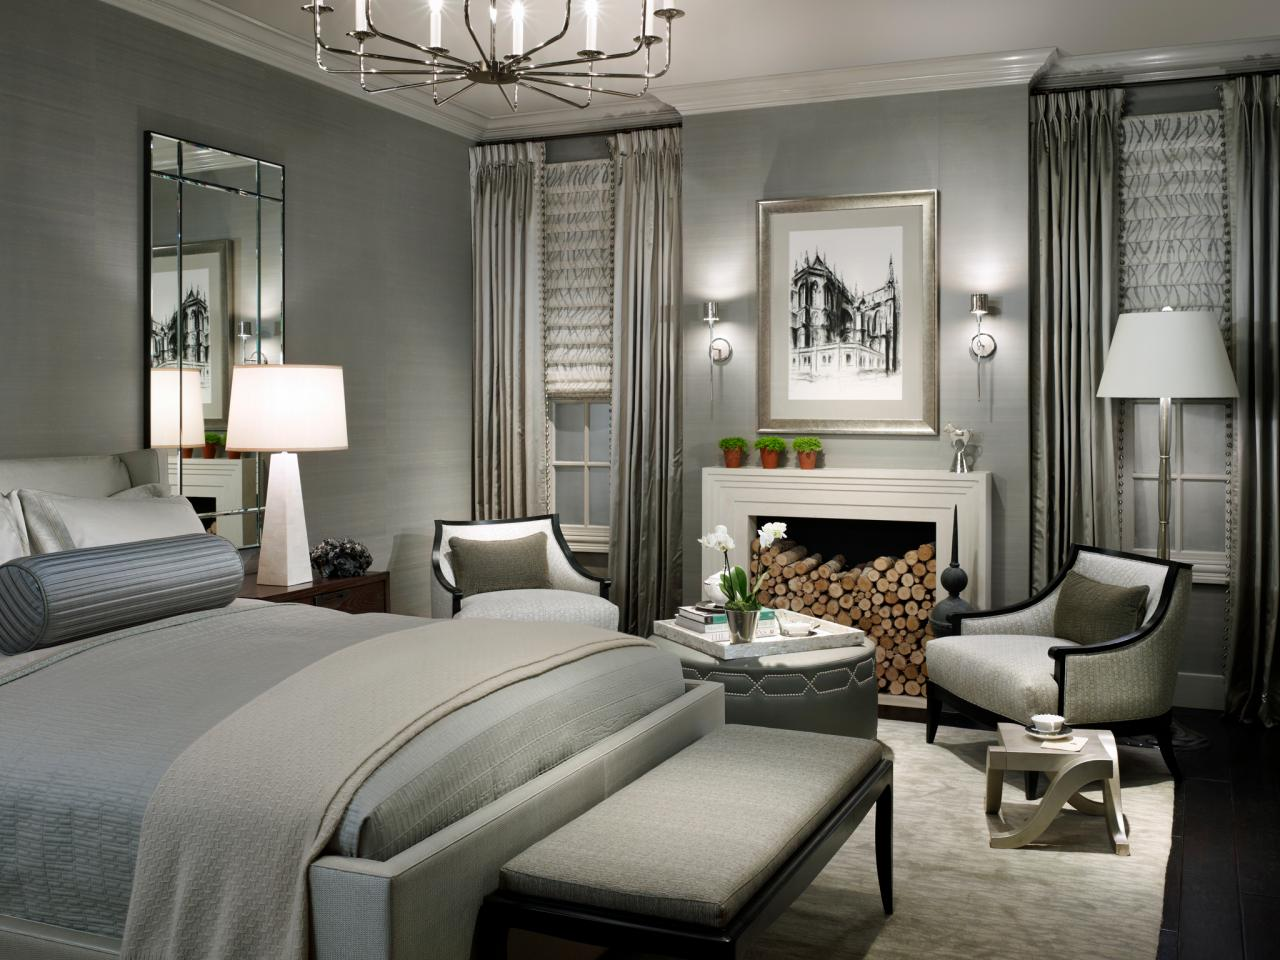 Decorating A Gray Bedroom Beautiful Bedrooms 15 Shades Of Gray Bedrooms Bedroom Decorating